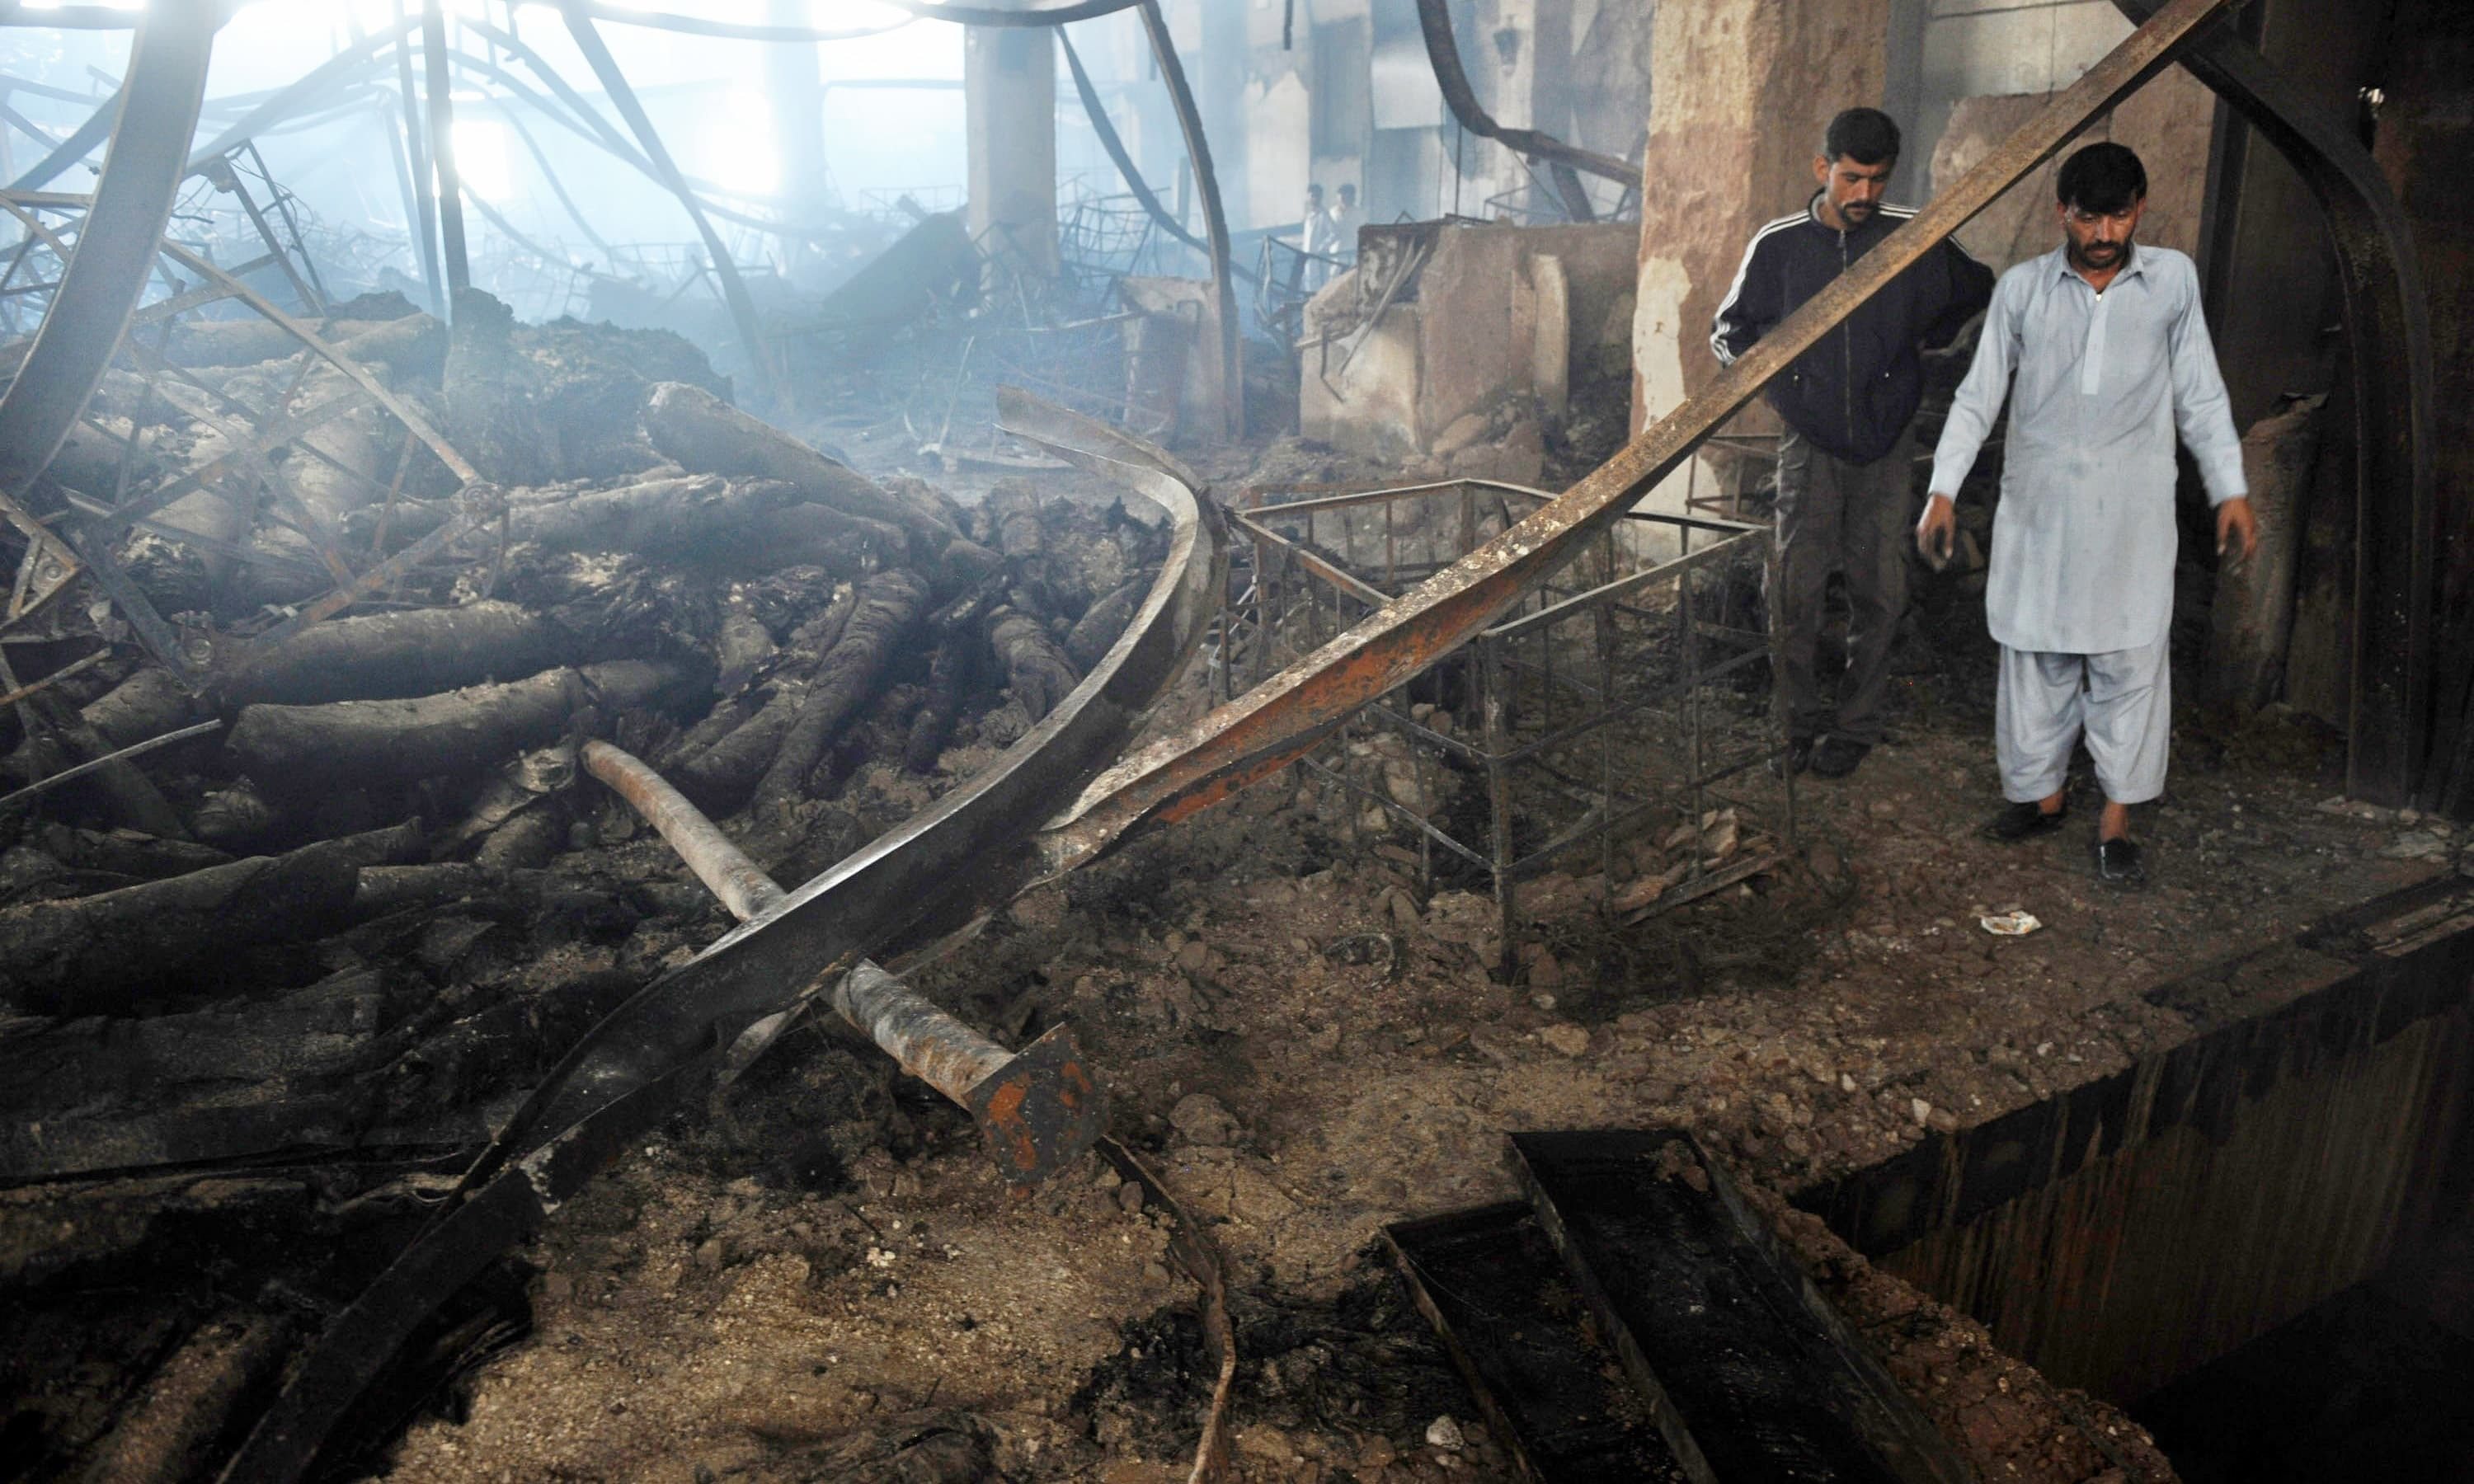 In this file photo taken on September 13, 2012, people gather in a garment factory in Karachi following a fire, in which more than 260 people died, on the third day of the fire incident. — AFP